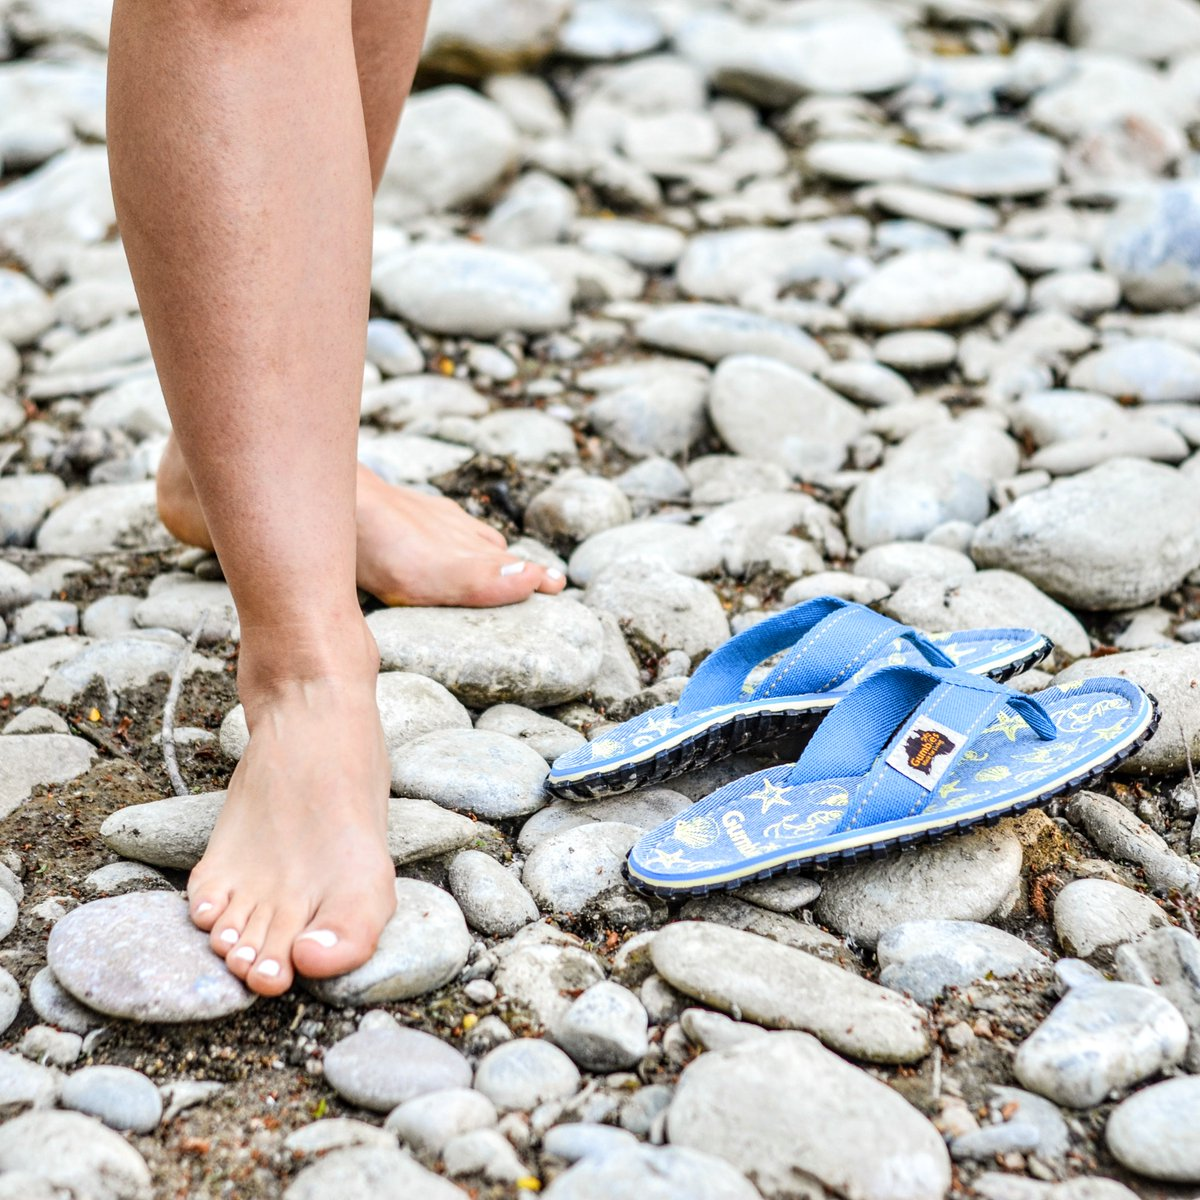 Don't forget to enter our #Styleoftheweek competition to be in with a chance of winning a pair of Gumbies 'Seashells' Islander flip-flops!  To enter, please visit our Gumbies USA Facebook page;  http://www. facebook.com/gumbiesUSA     (Competition ends 12pm EST 05/29/2020)<br>http://pic.twitter.com/mpJrBP4XNd